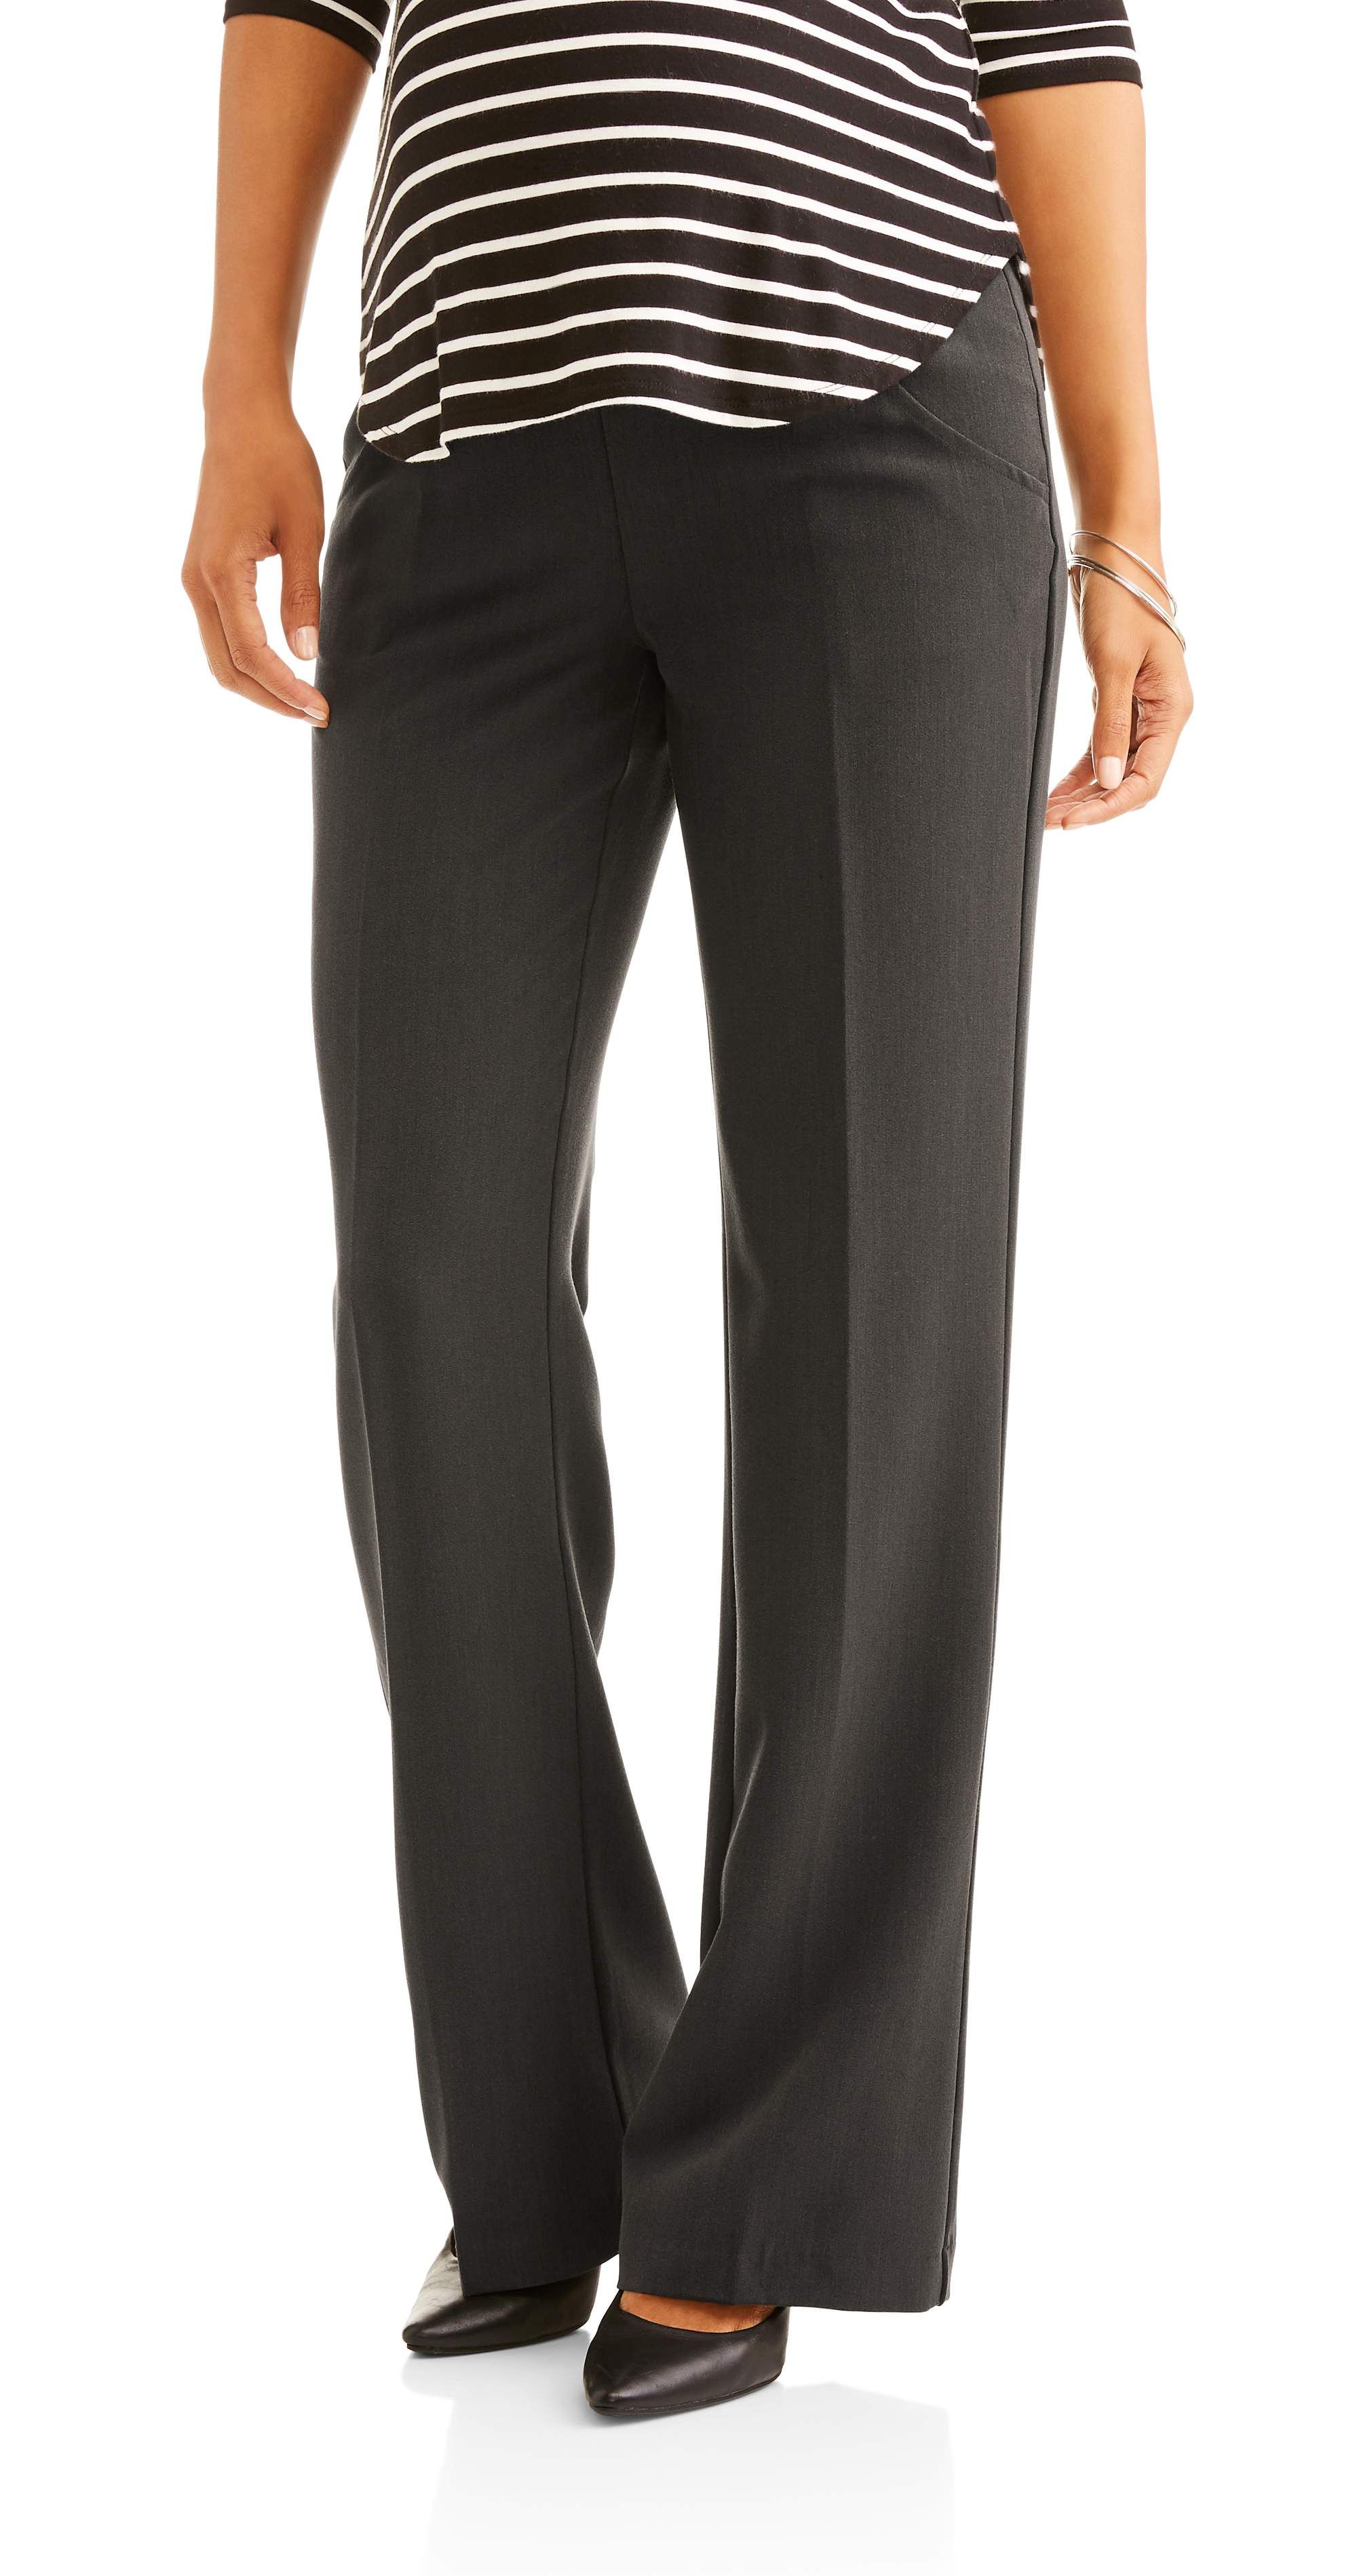 Oh Mamma Maternity Oh Mamma Wide Leg Career Pant With Full Panel Available In Plus Sizes Walmart Com Fall Maternity Outfits Maternity Work Pants Black Maternity Pants [ 3797 x 2000 Pixel ]